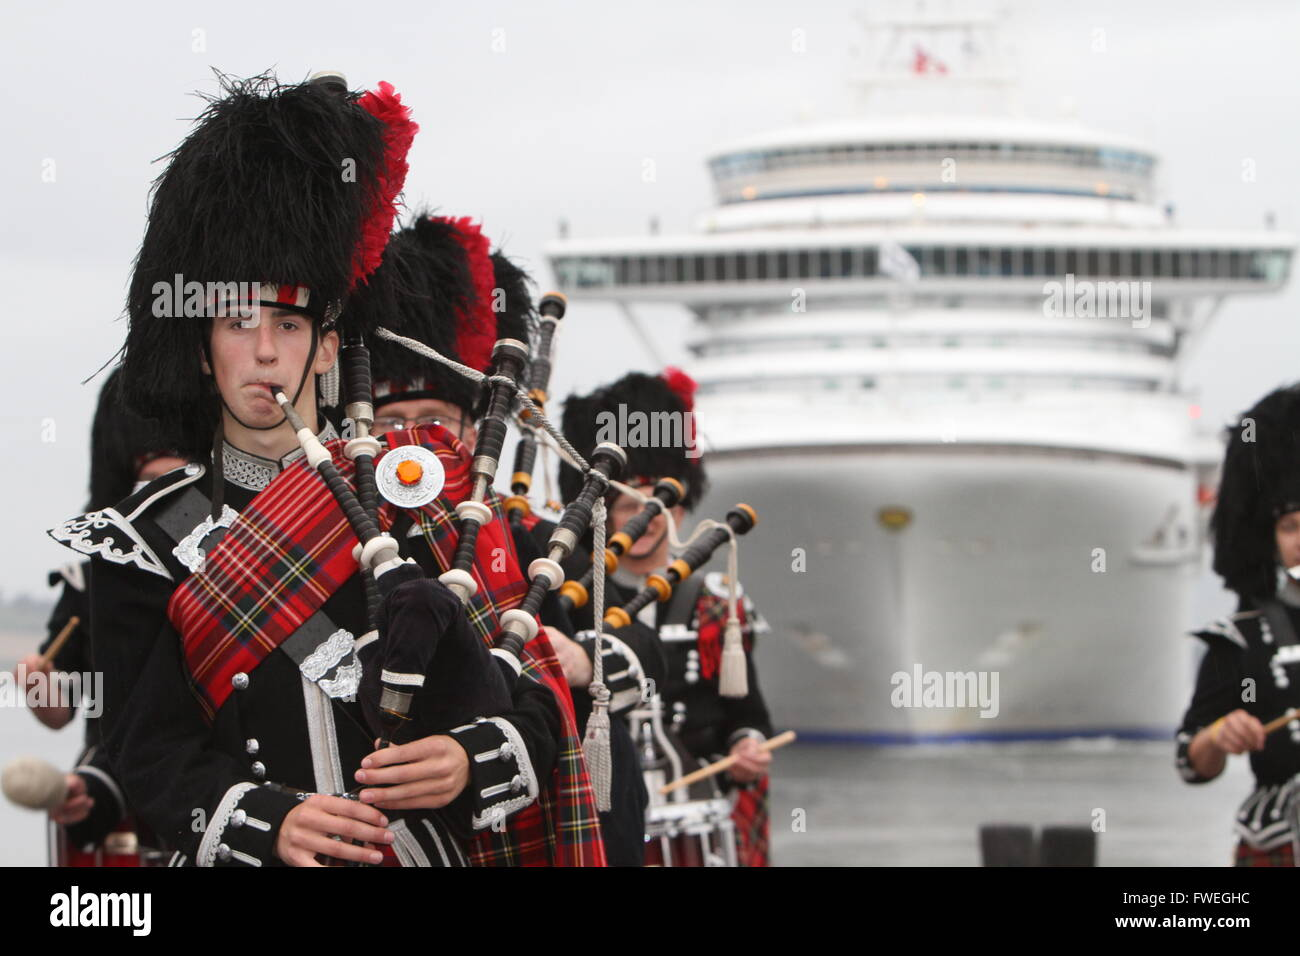 Pipers playing in front of cruise liner docking in Edinburgh - Stock Image